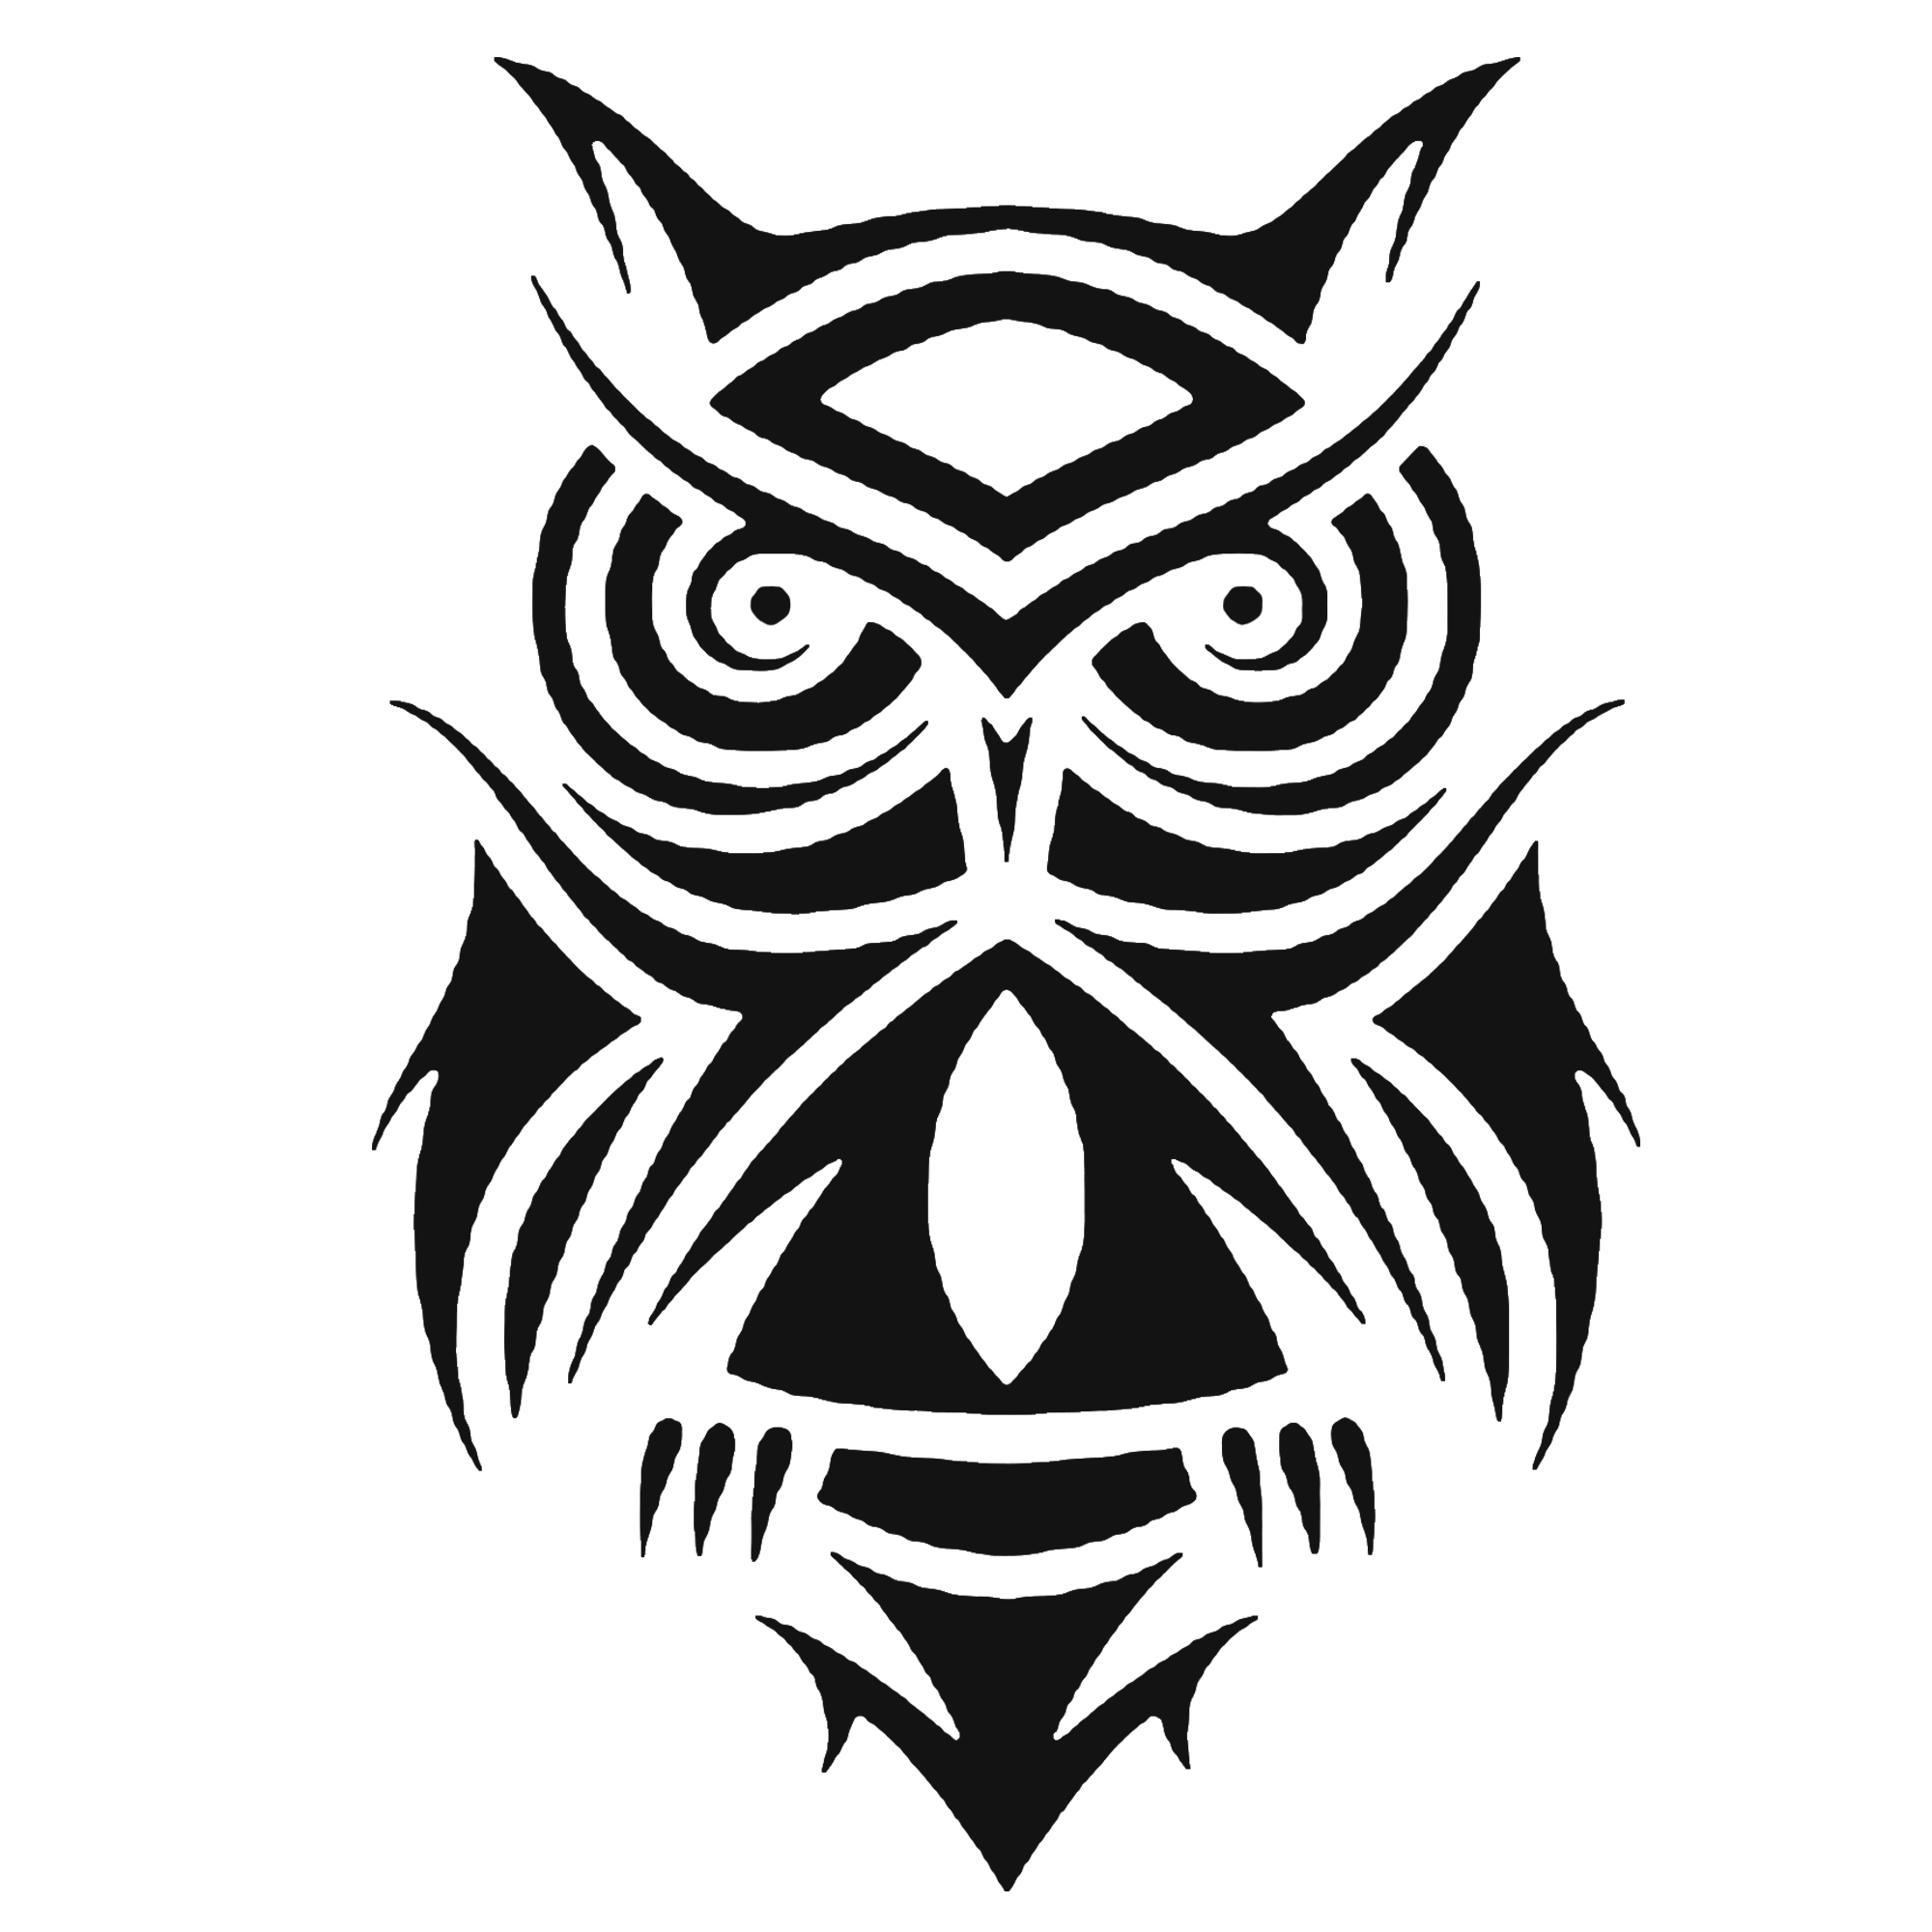 Tribal Owl Boho Design T-Shirt Printable Digital Download - BohoEntice